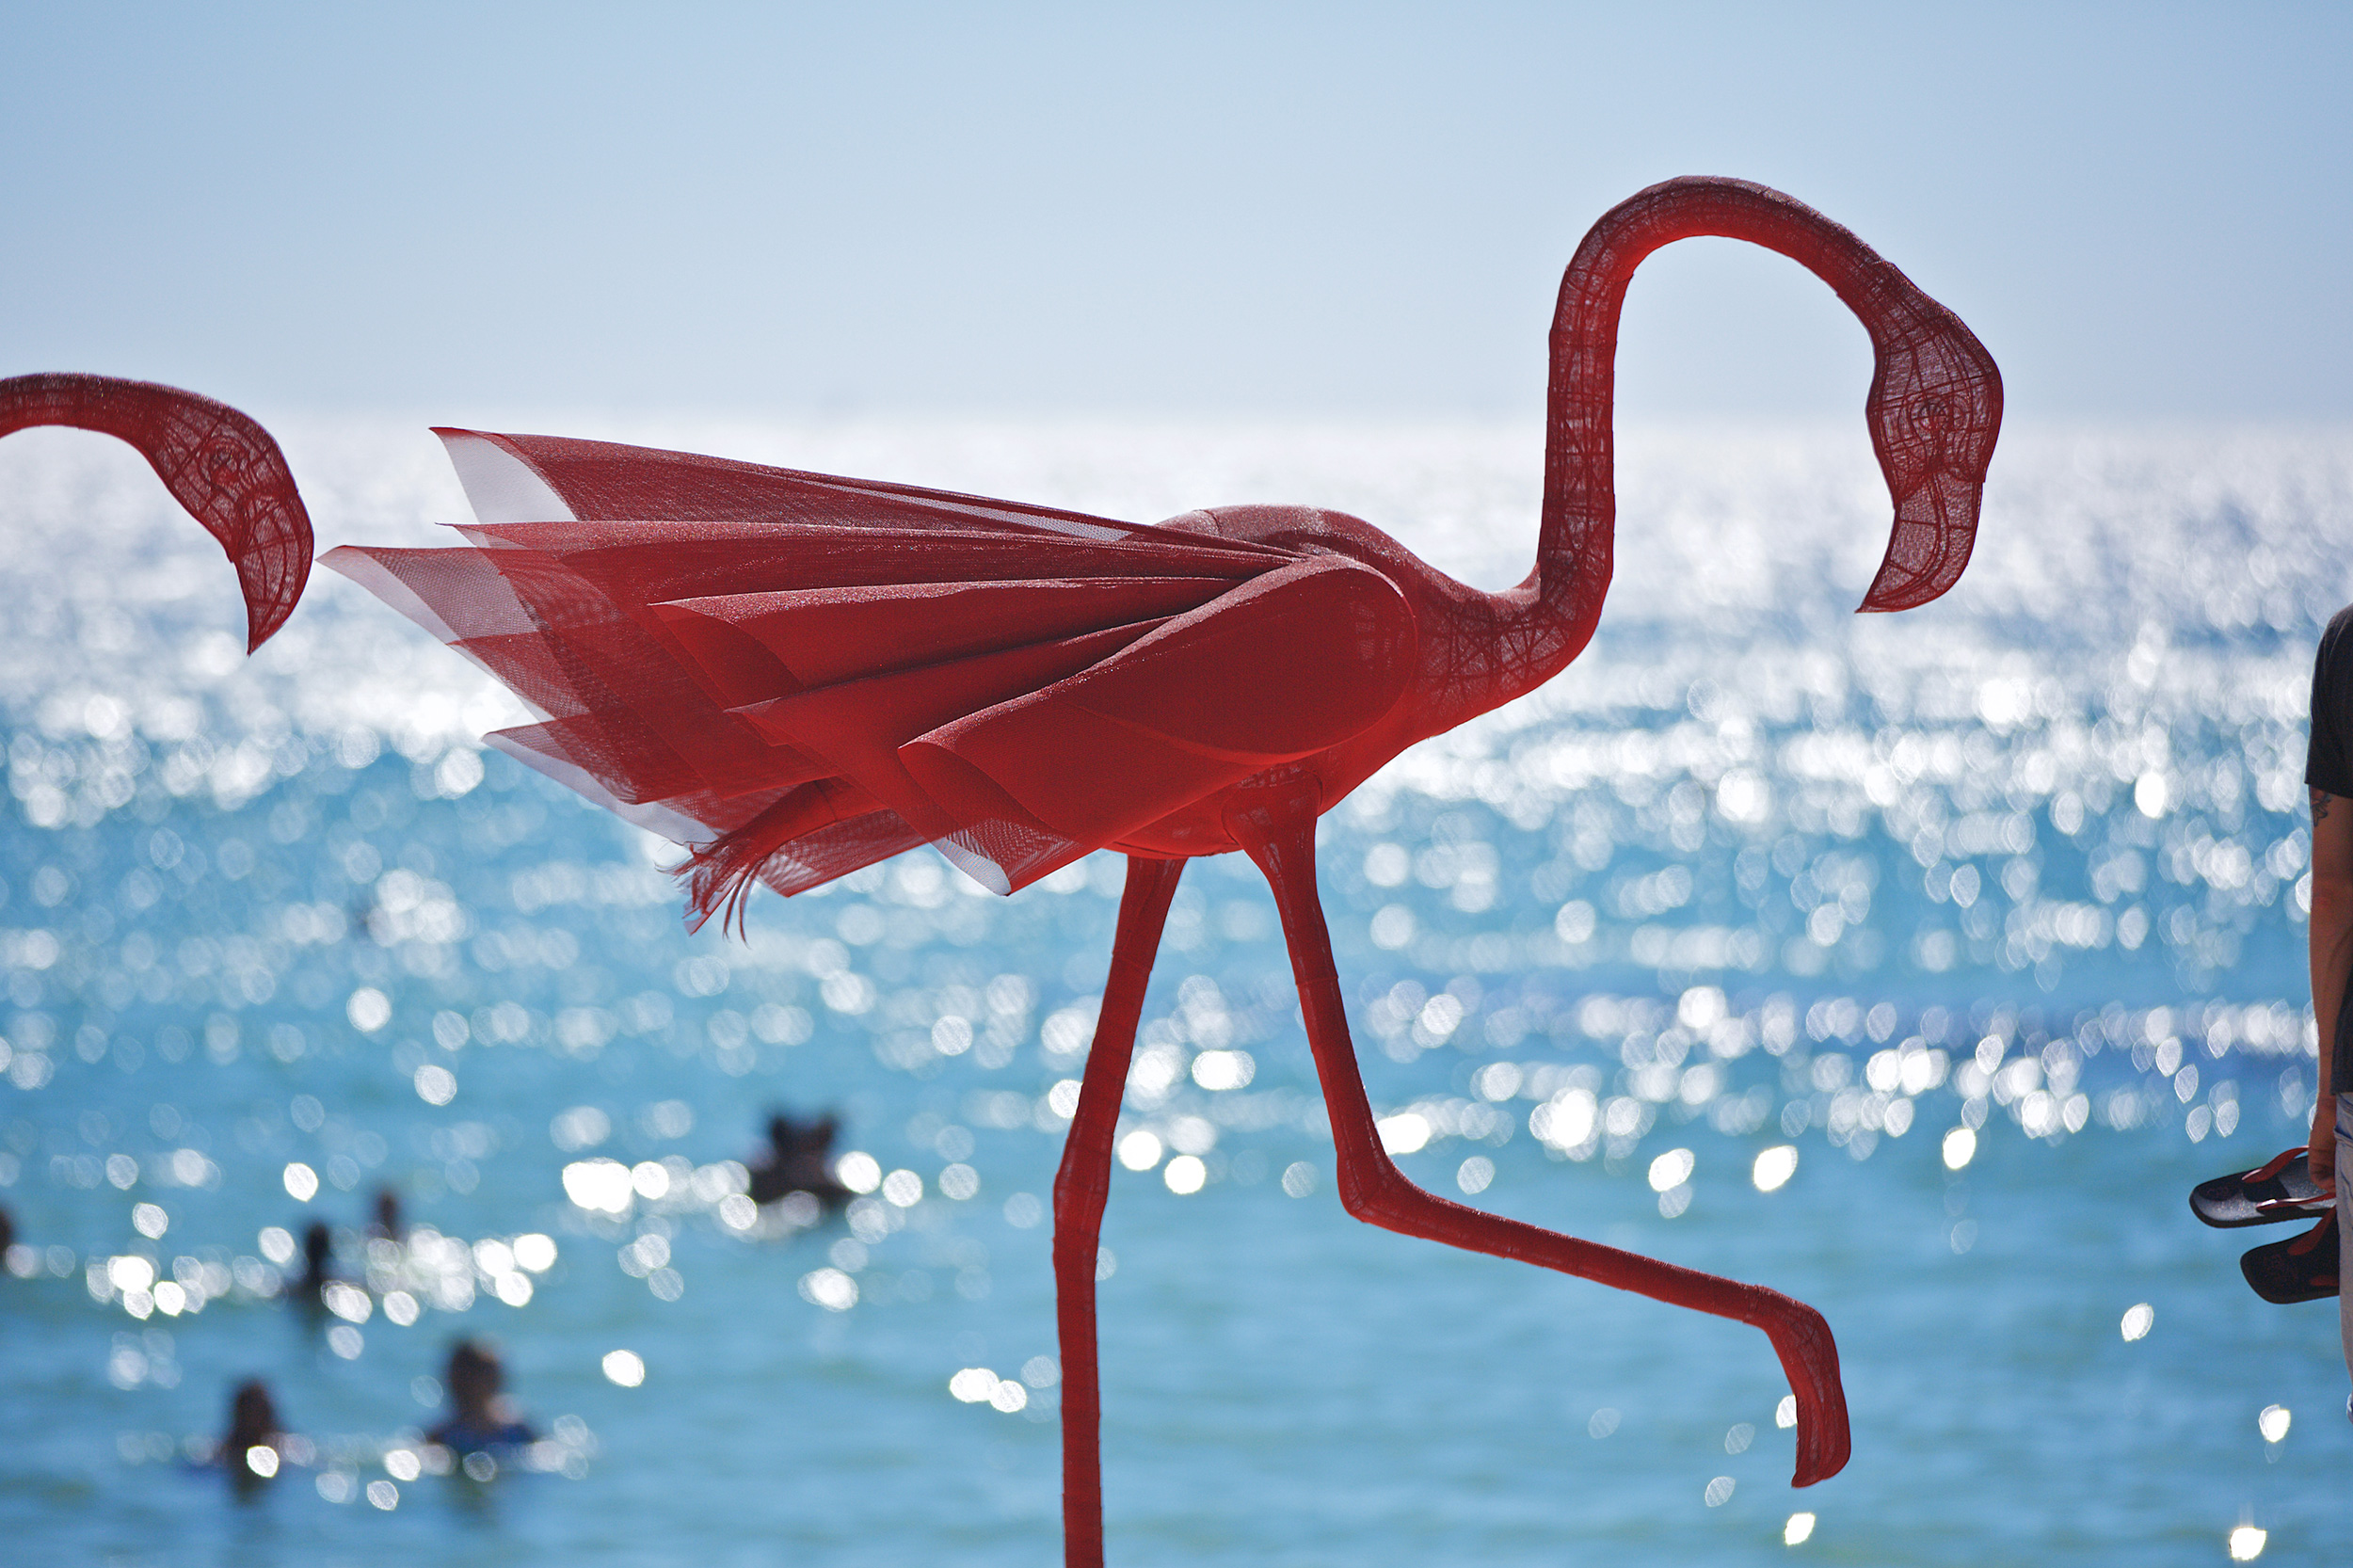 Wendi Zhang, mi no 5, Sculpture by the Sea, Cottesloe 2015. Photo Jarrad Seng.